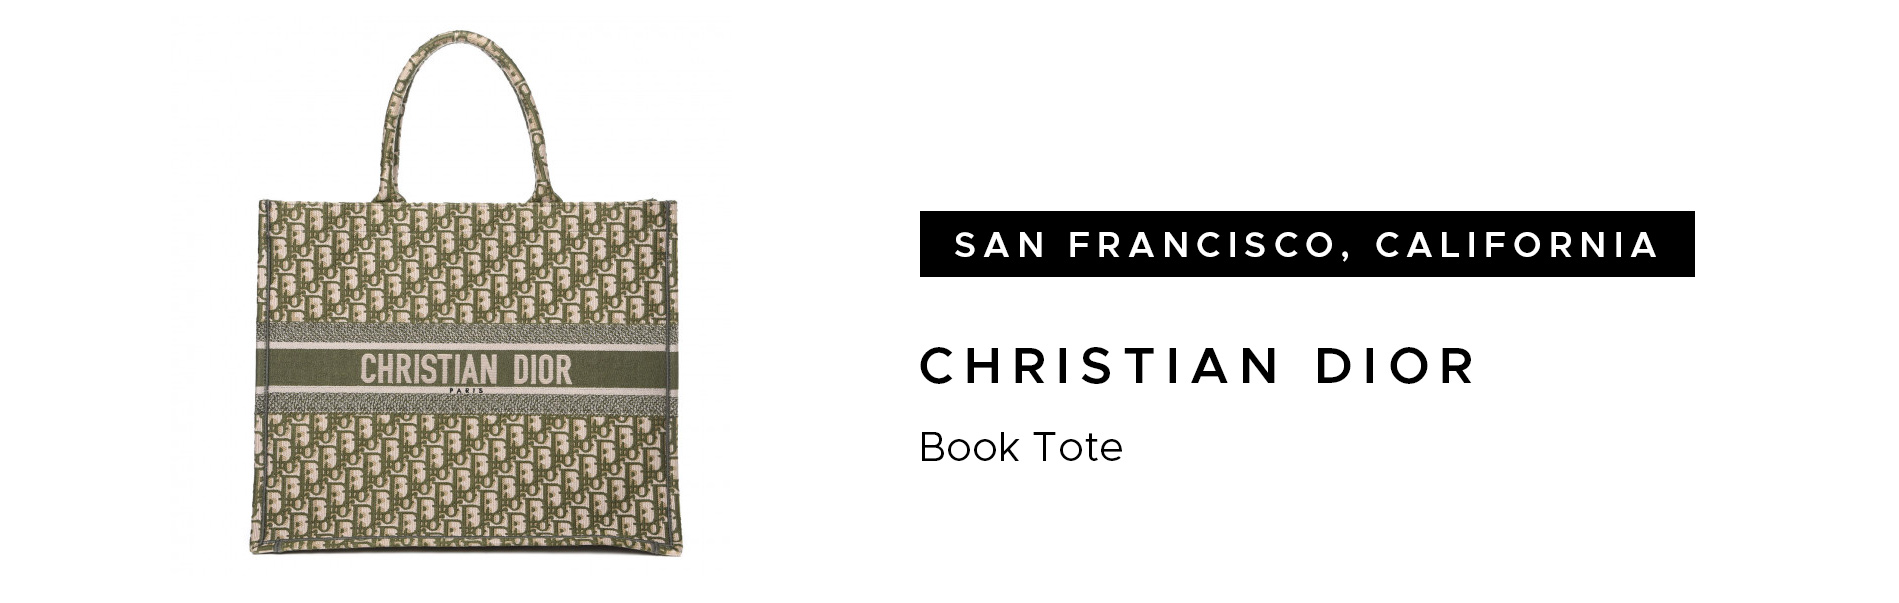 San Francisco Christian Dior Book Tote